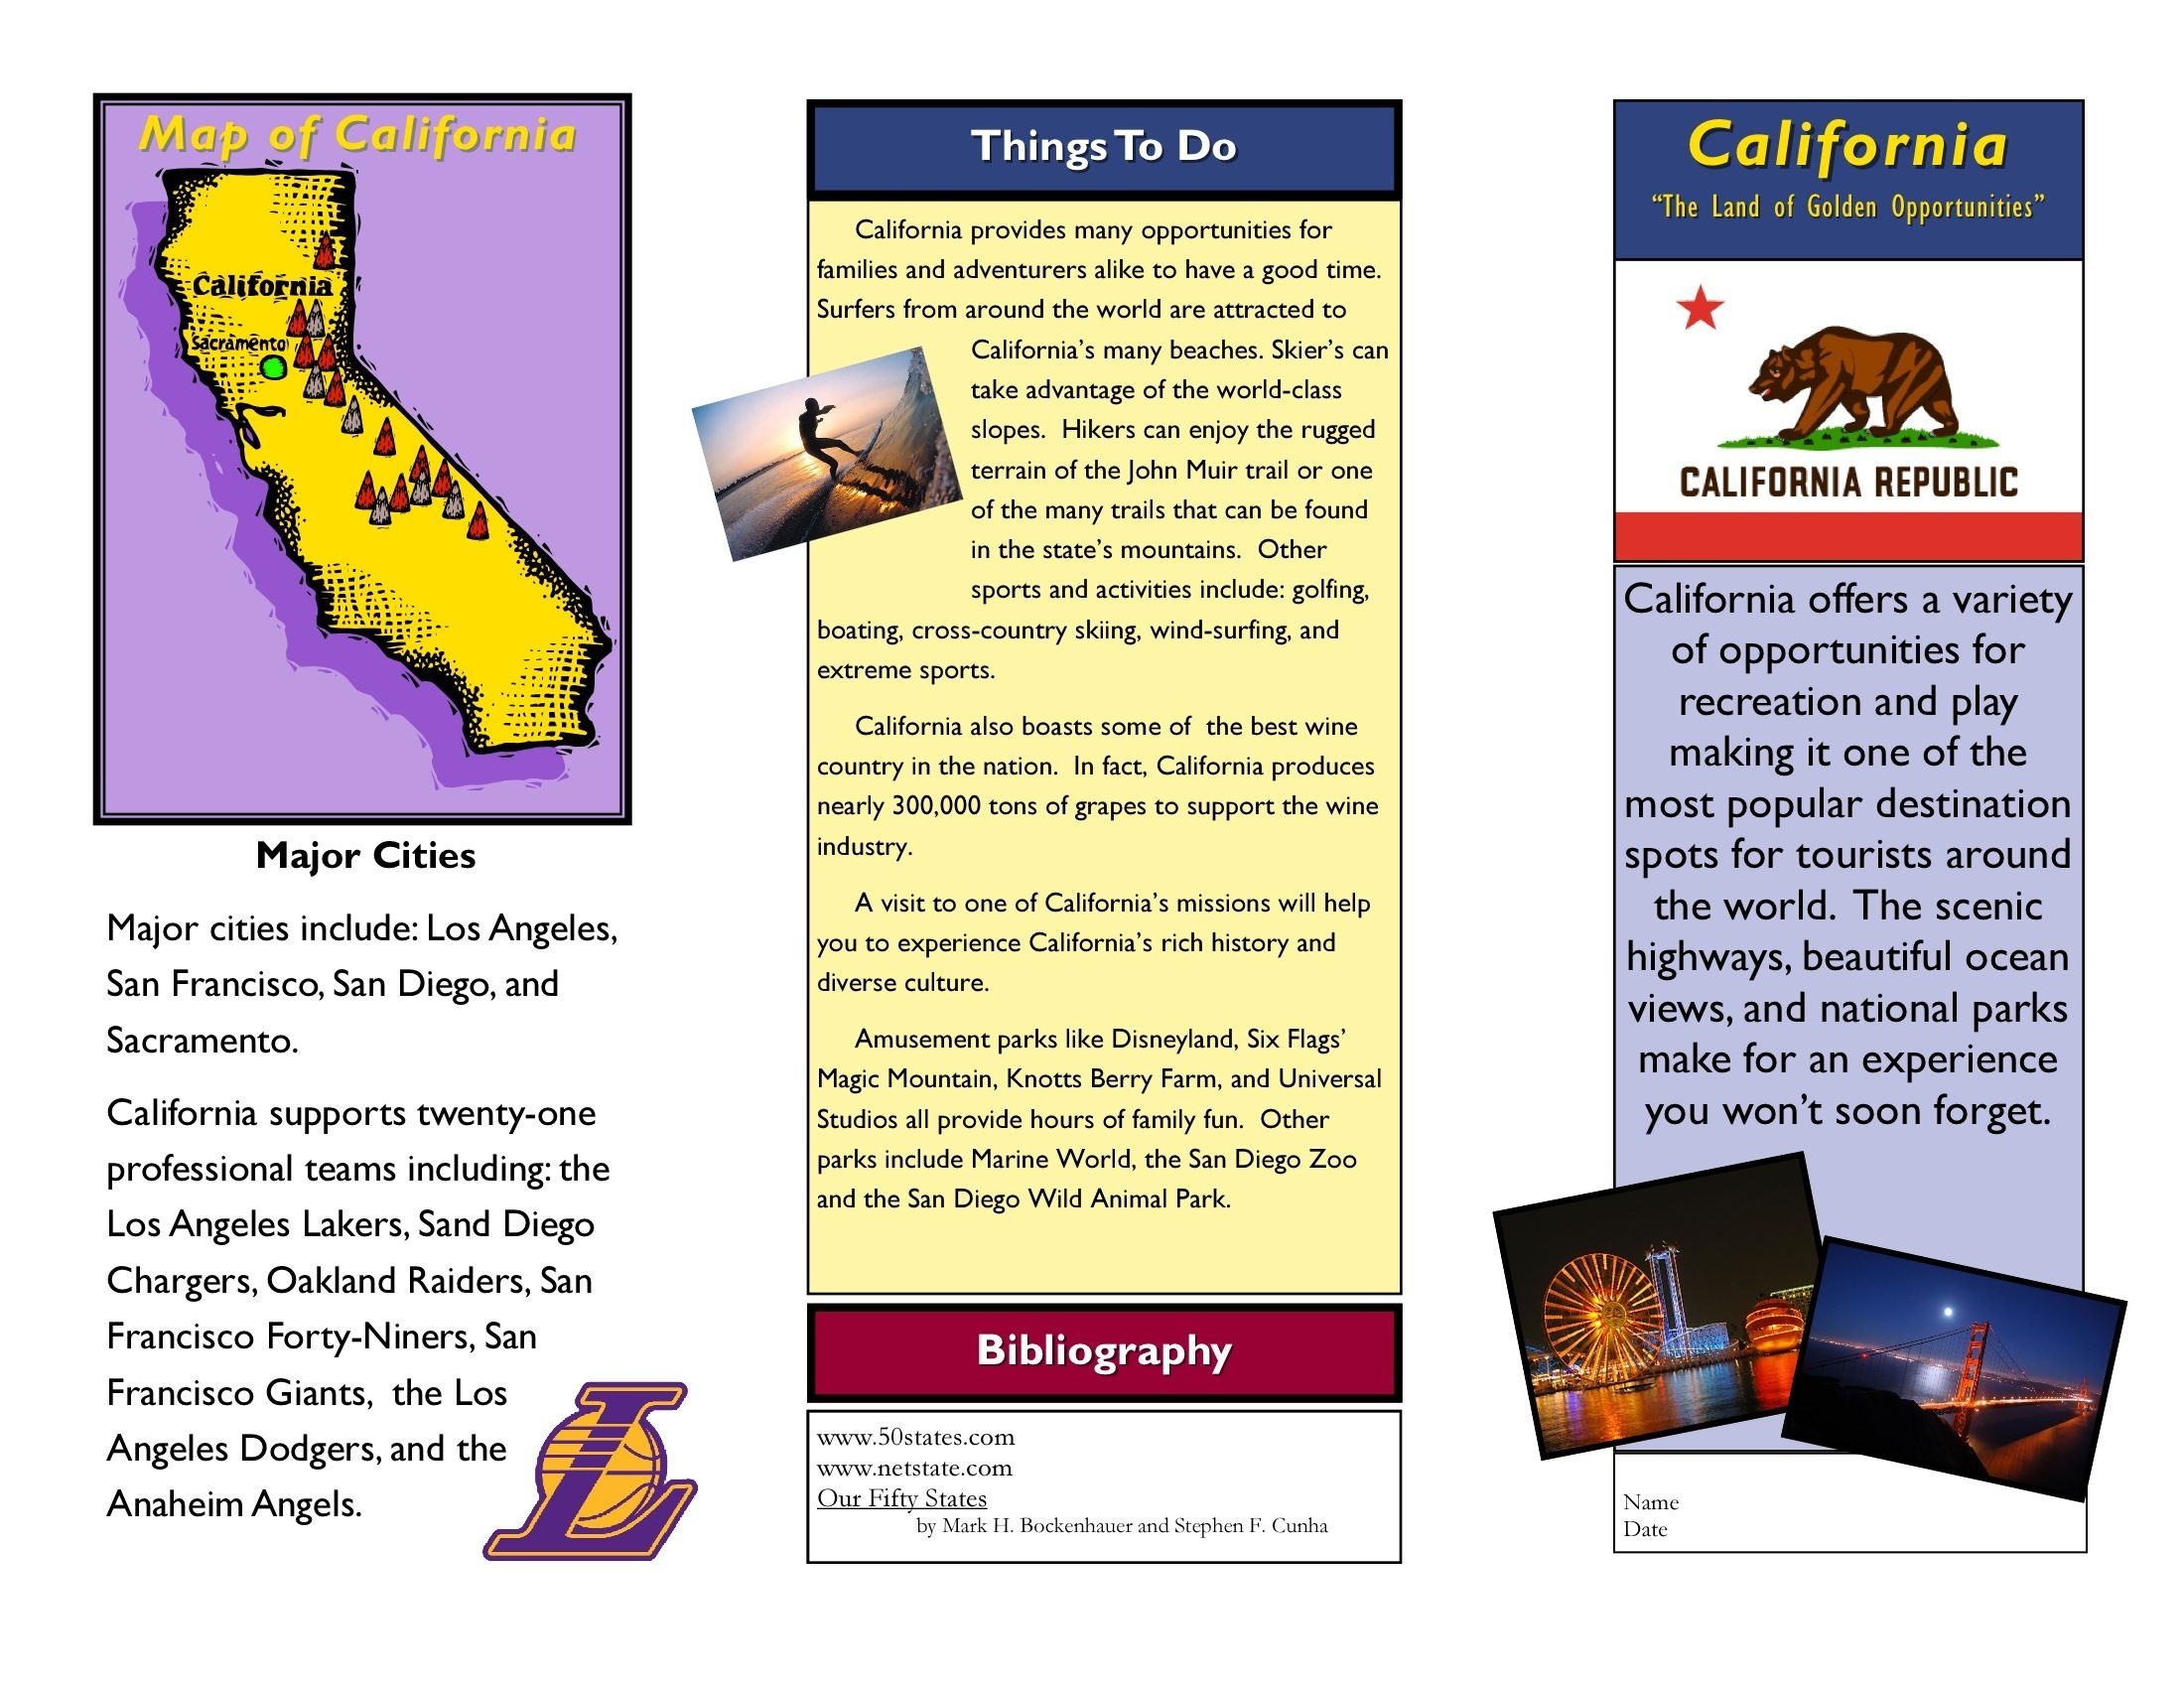 How To Make A Travel Guide Brochure - Tutlin.psstech.co - Free Printable Travel Brochures